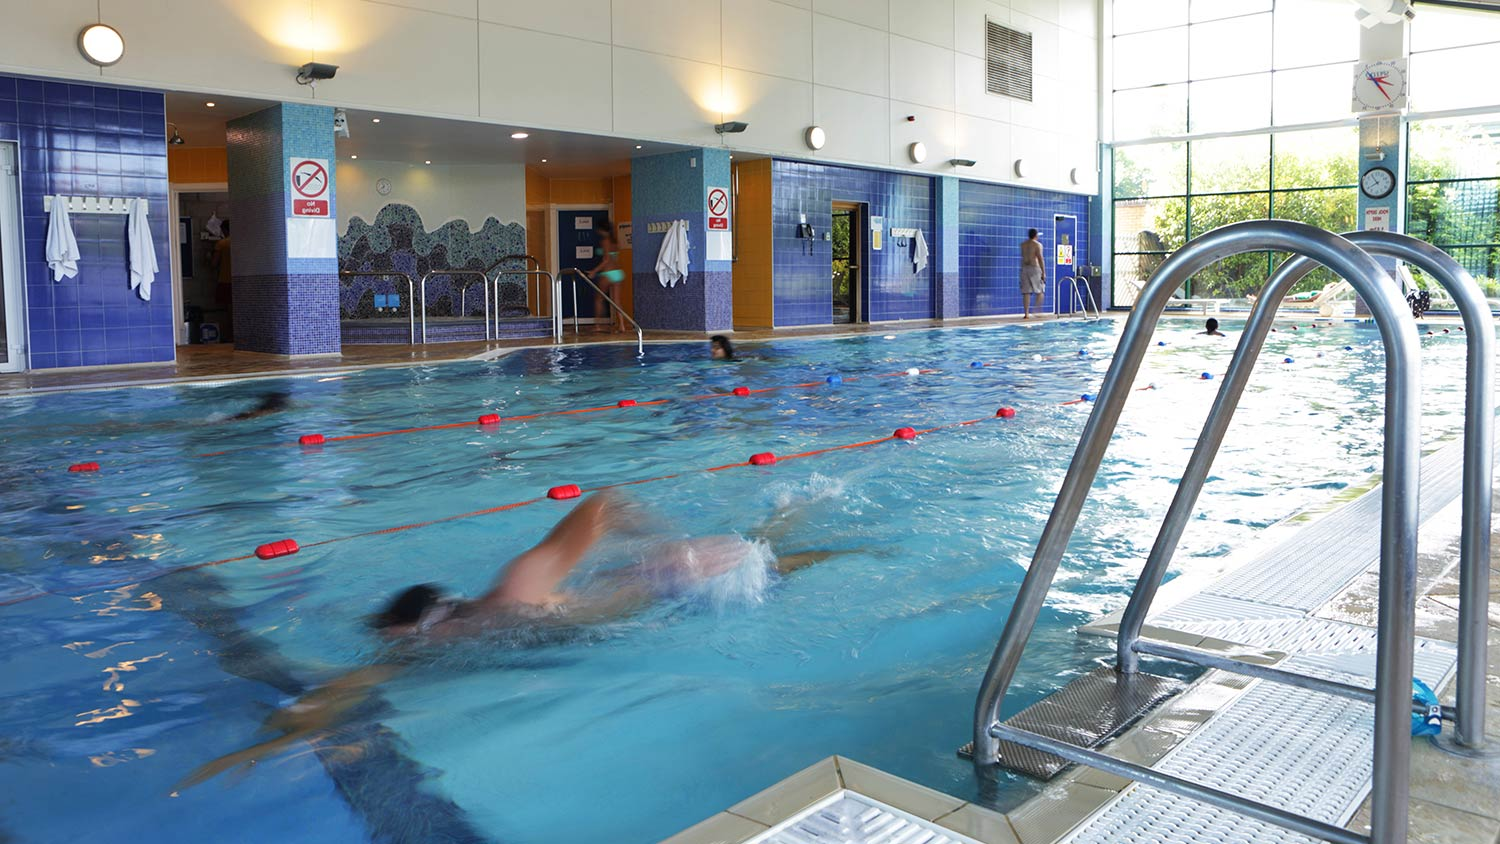 Warwick Fitness & Wellbeing Gym - Swimming pool